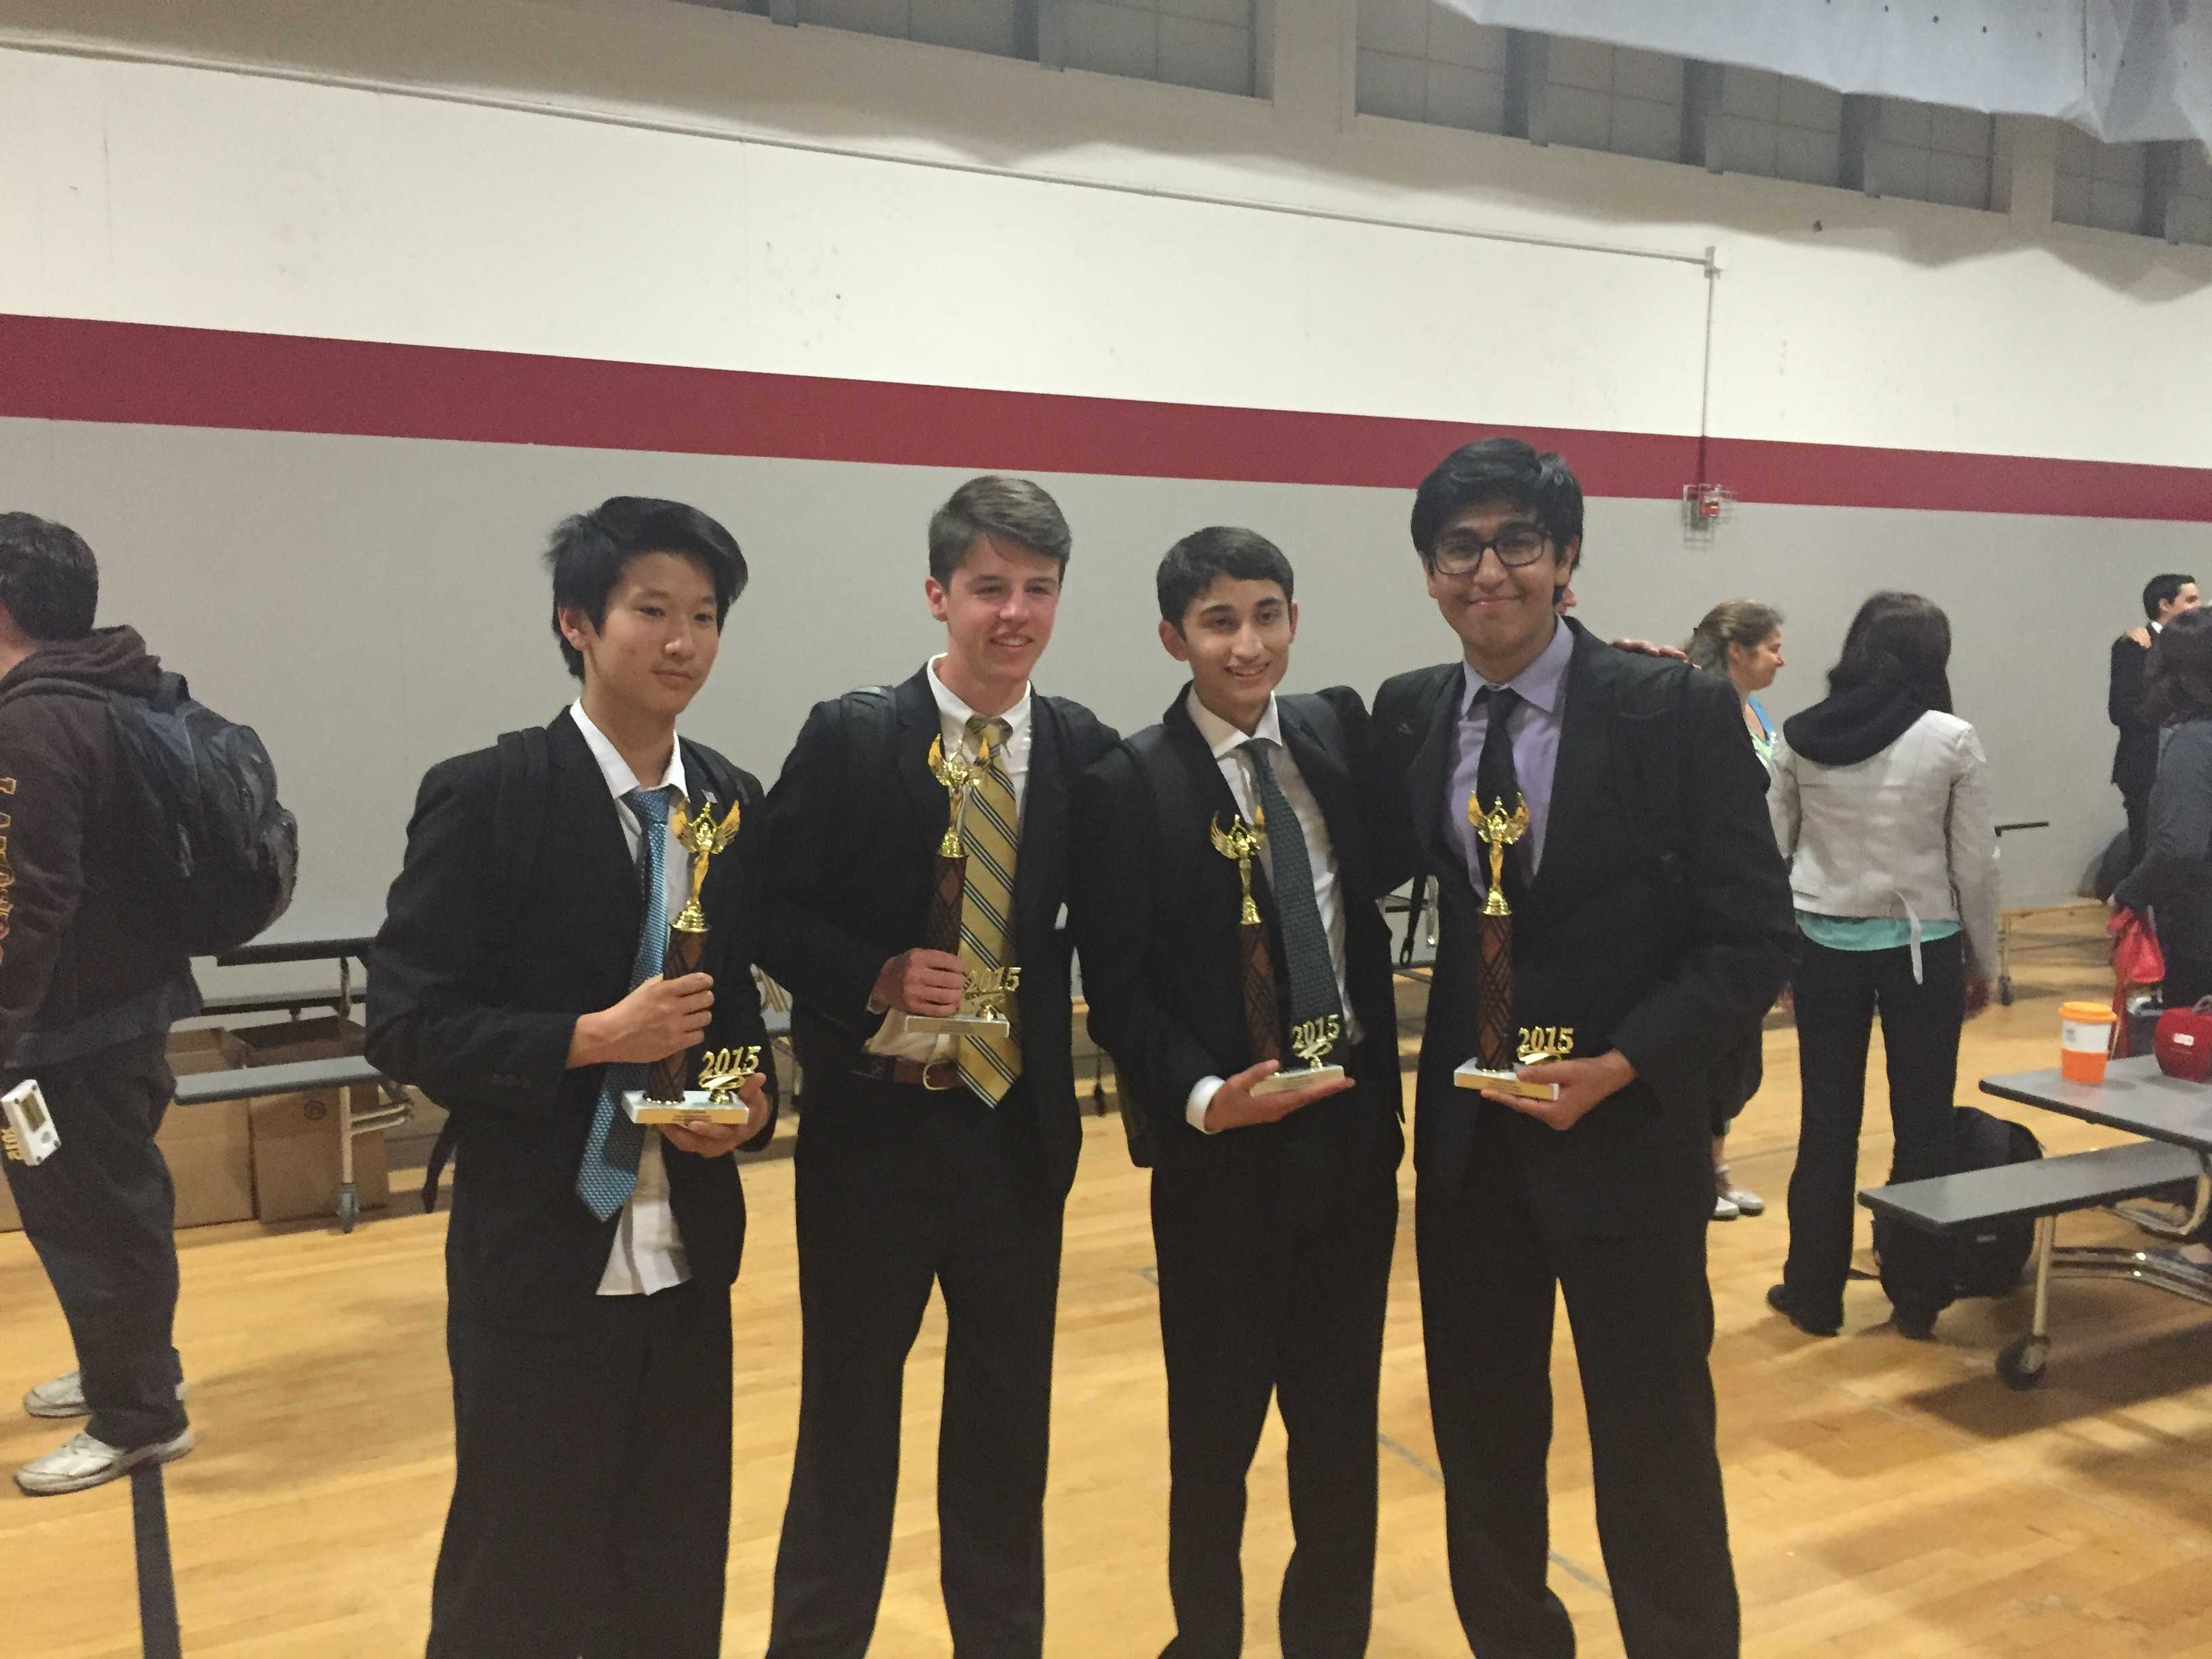 From left to right: Sophomores Andrew Shen and Matthew Hamilton and juniors Kush Dubey and Ajay Raj hold their trophies at Westmont High School after qualifying for the state tournament.